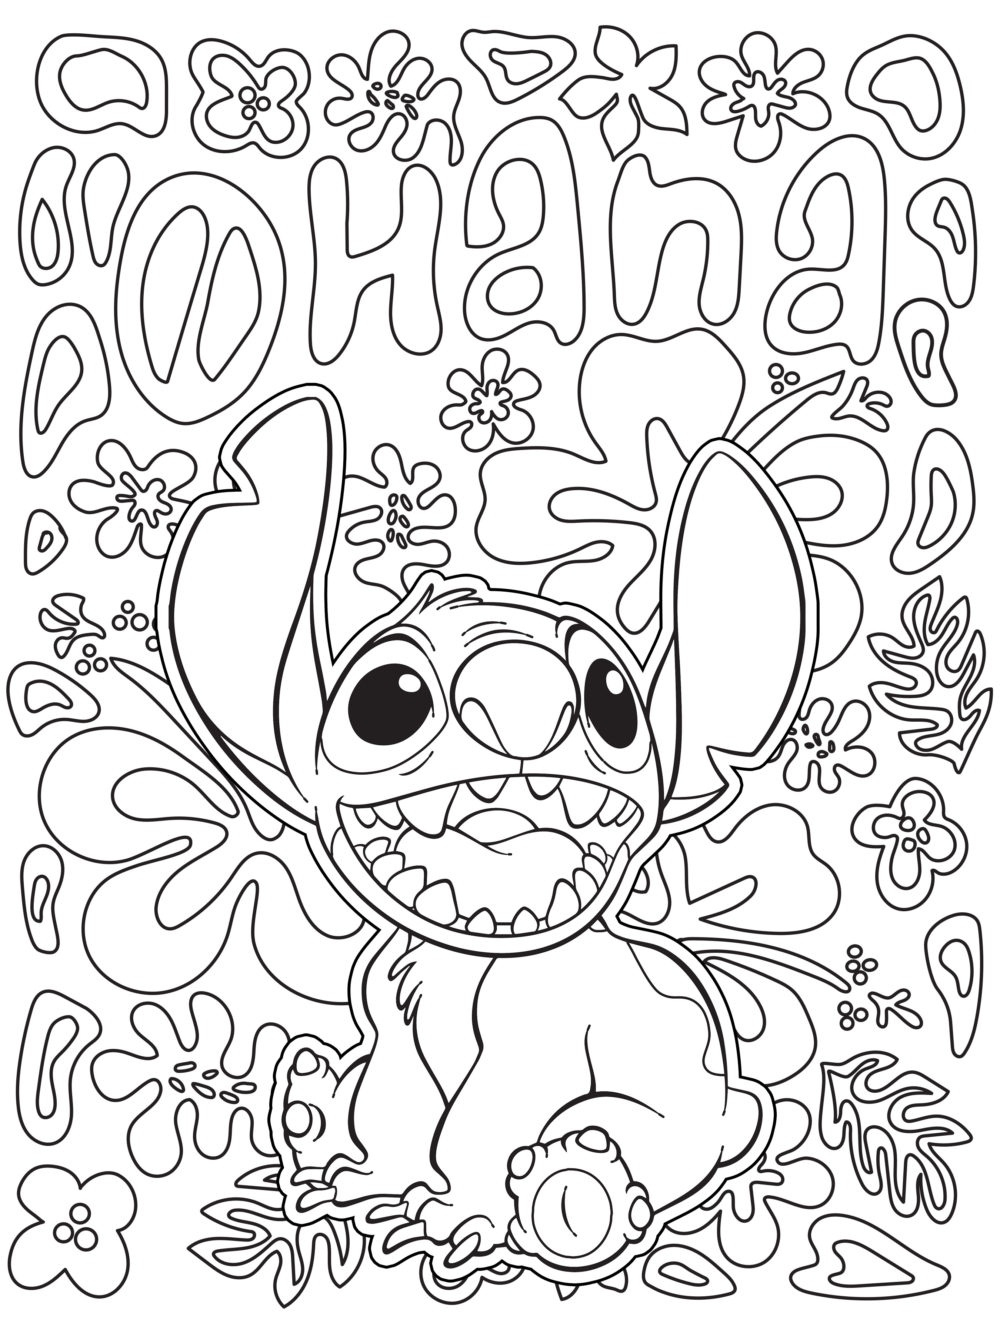 25+ Elegant Picture of Stress Relief Coloring Pages